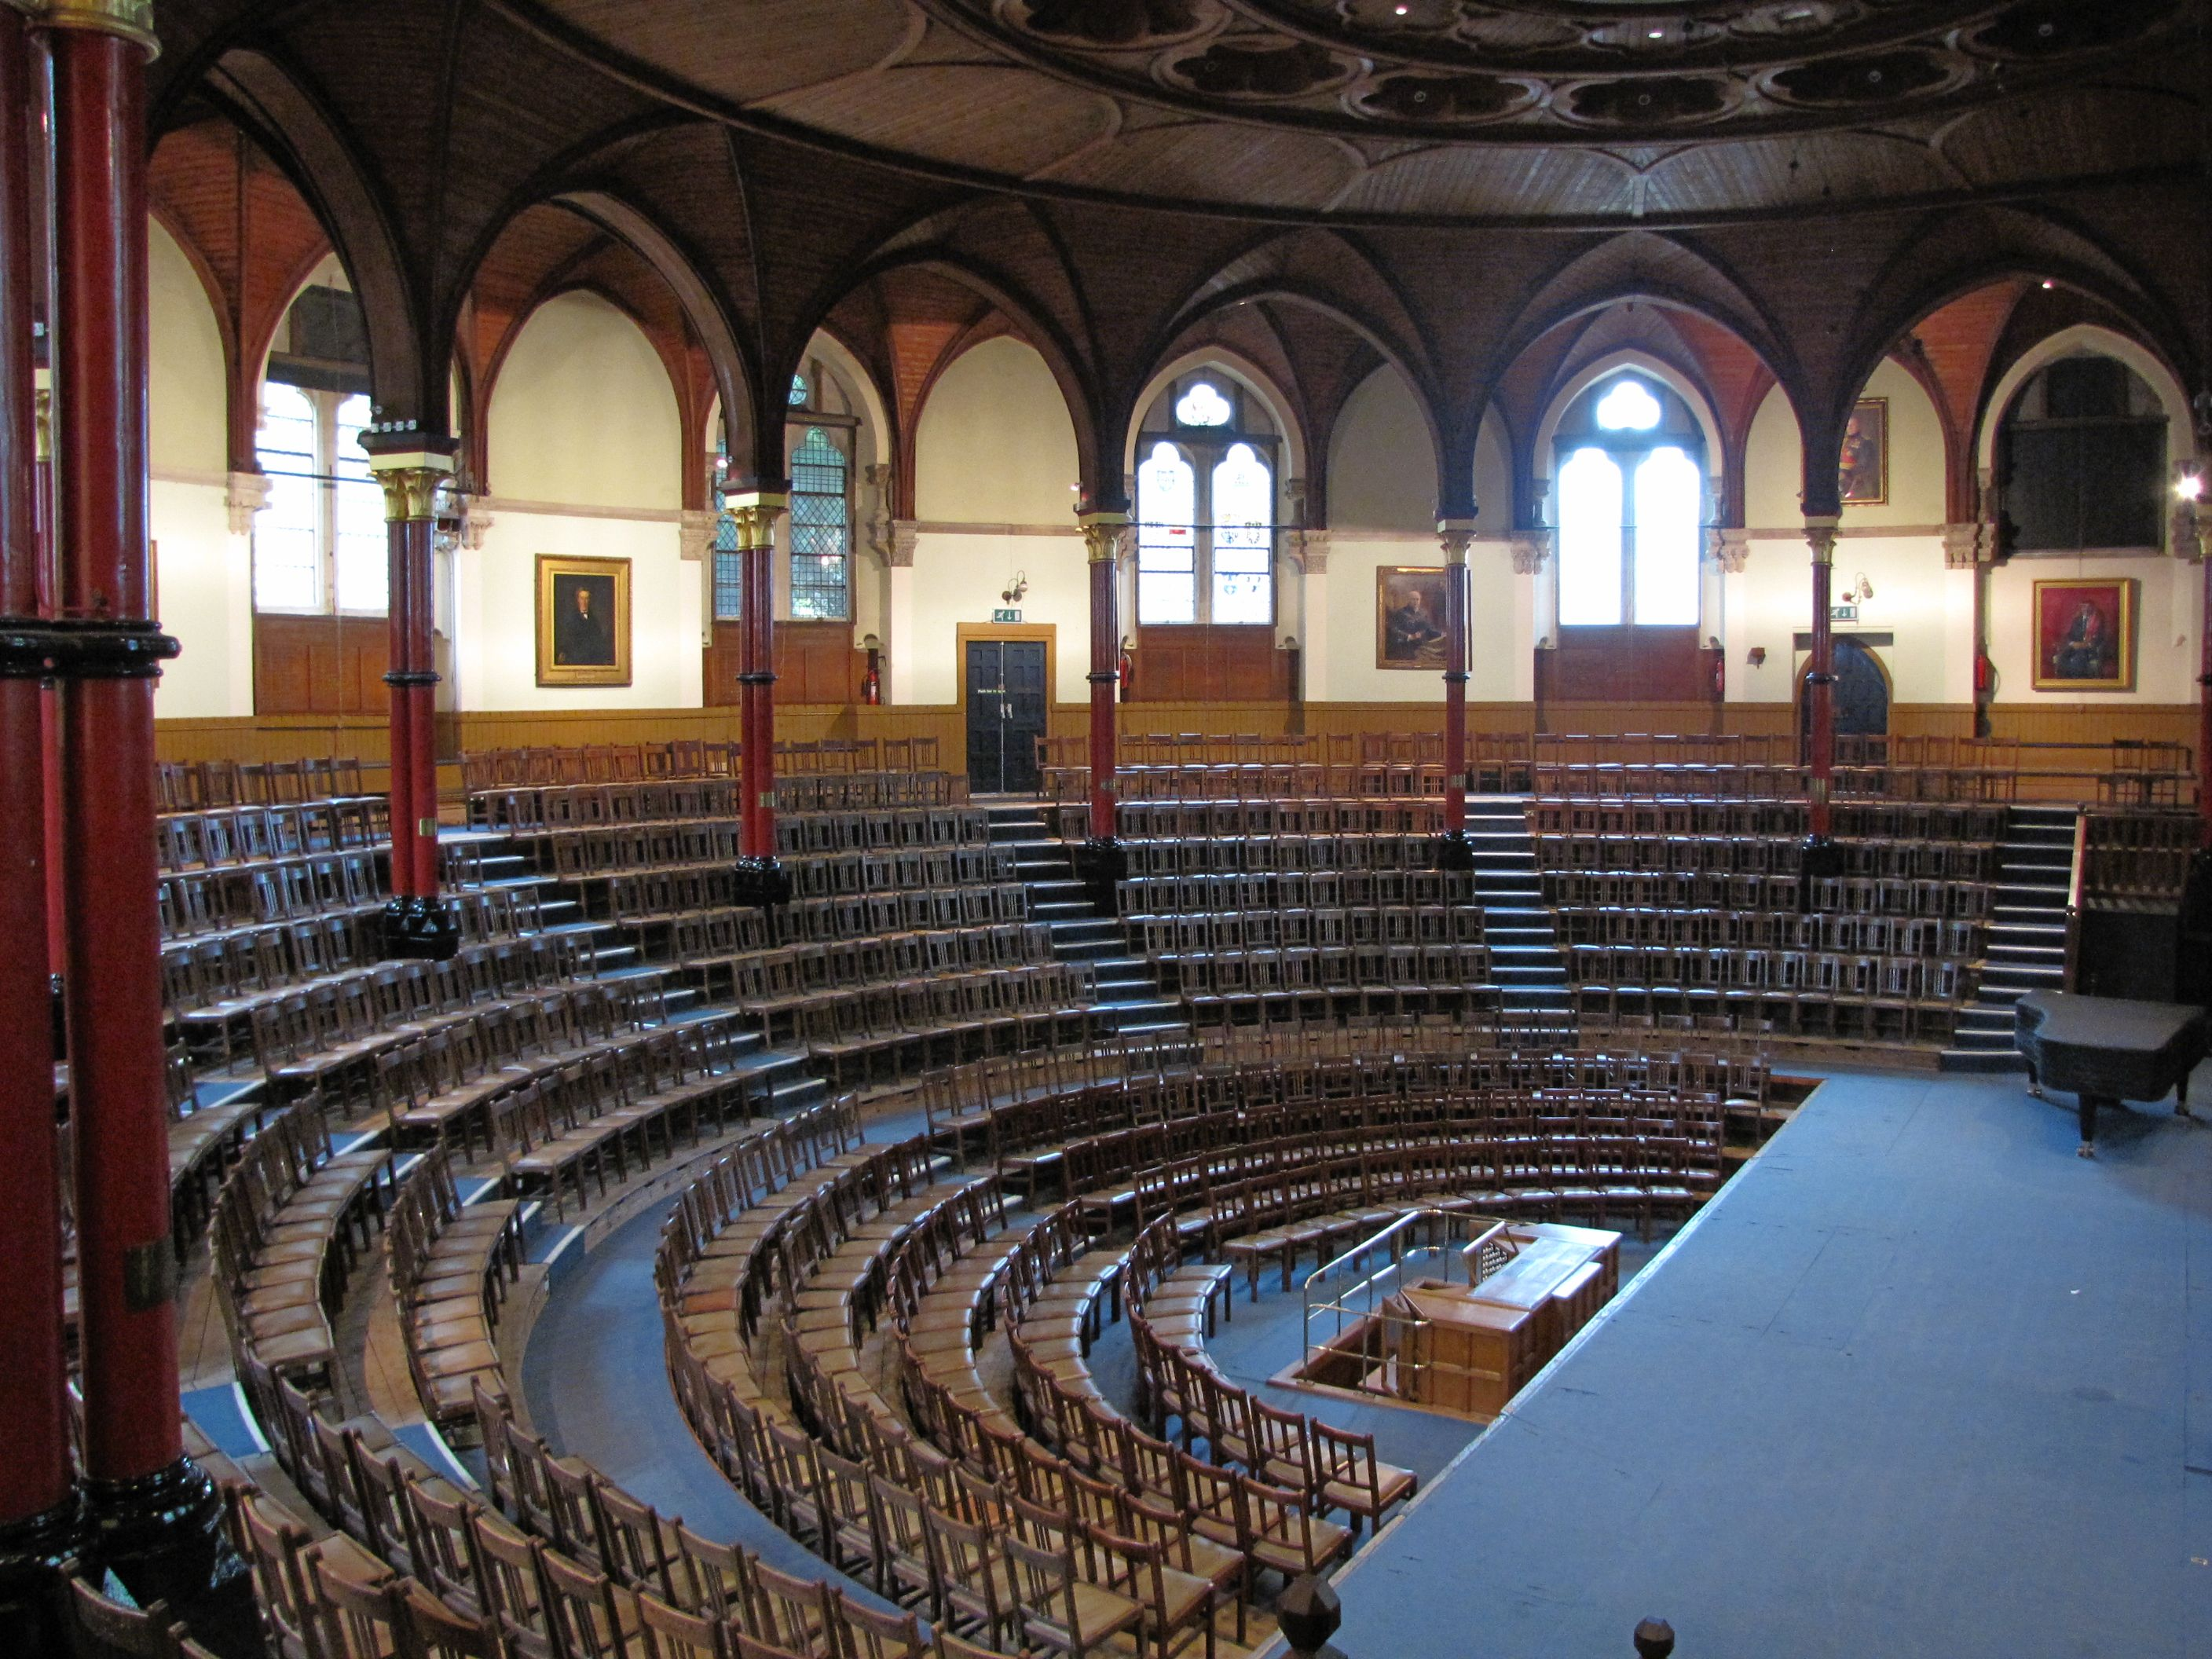 The Speech Room of Harrow School, built in 1871. Boys assemble here each Monday morning.